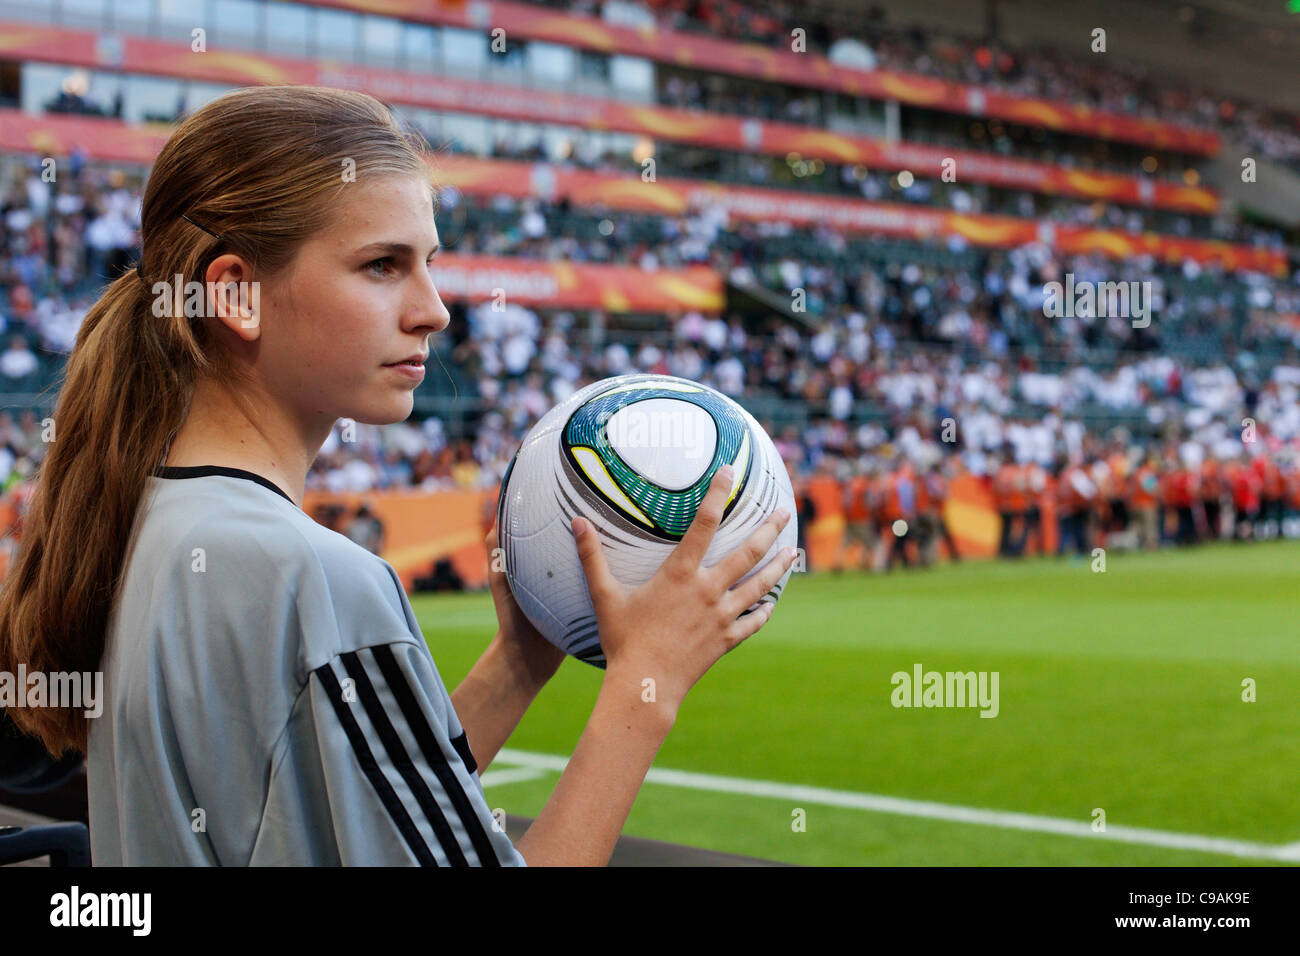 A ball girl holds an official match ball at the 2011 FIFA Women's World Cup Group A match between France and - Stock Image